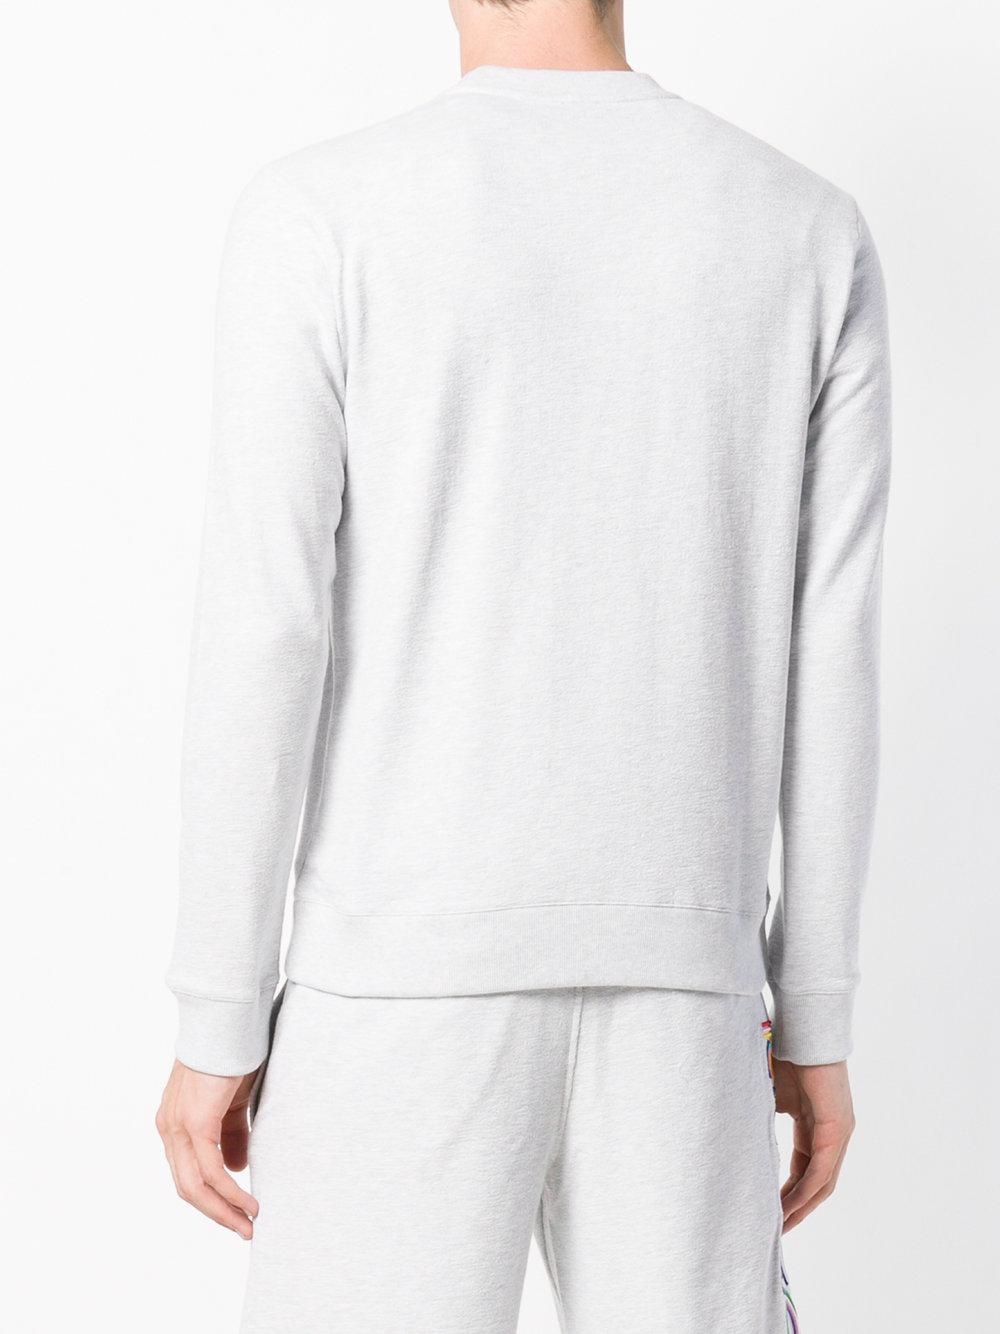 KENZO Cotton Tiger Embroidery Sweatshirt in Grey (Grey) for Men